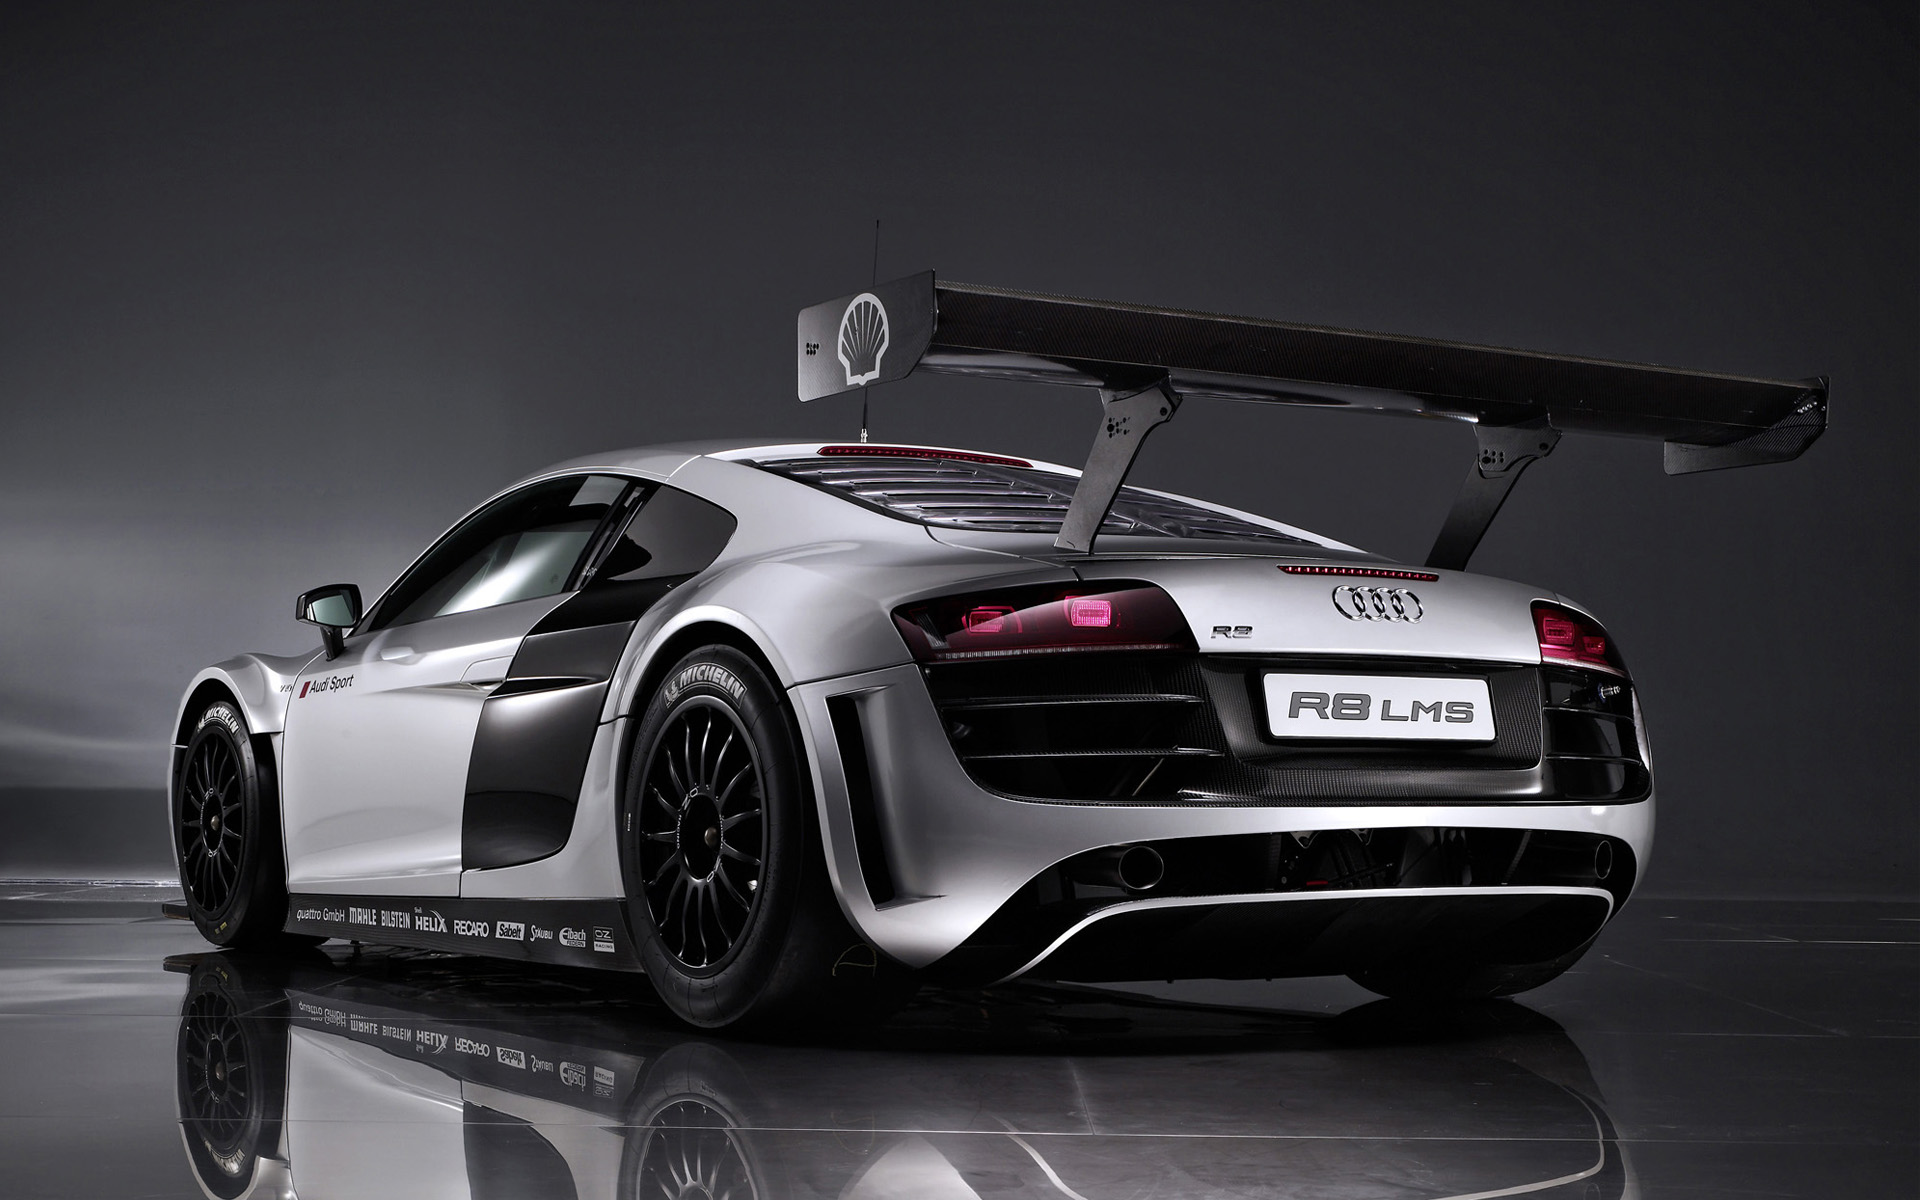 2010 Audi R8 LMS Wallpapers | HD Wallpapers